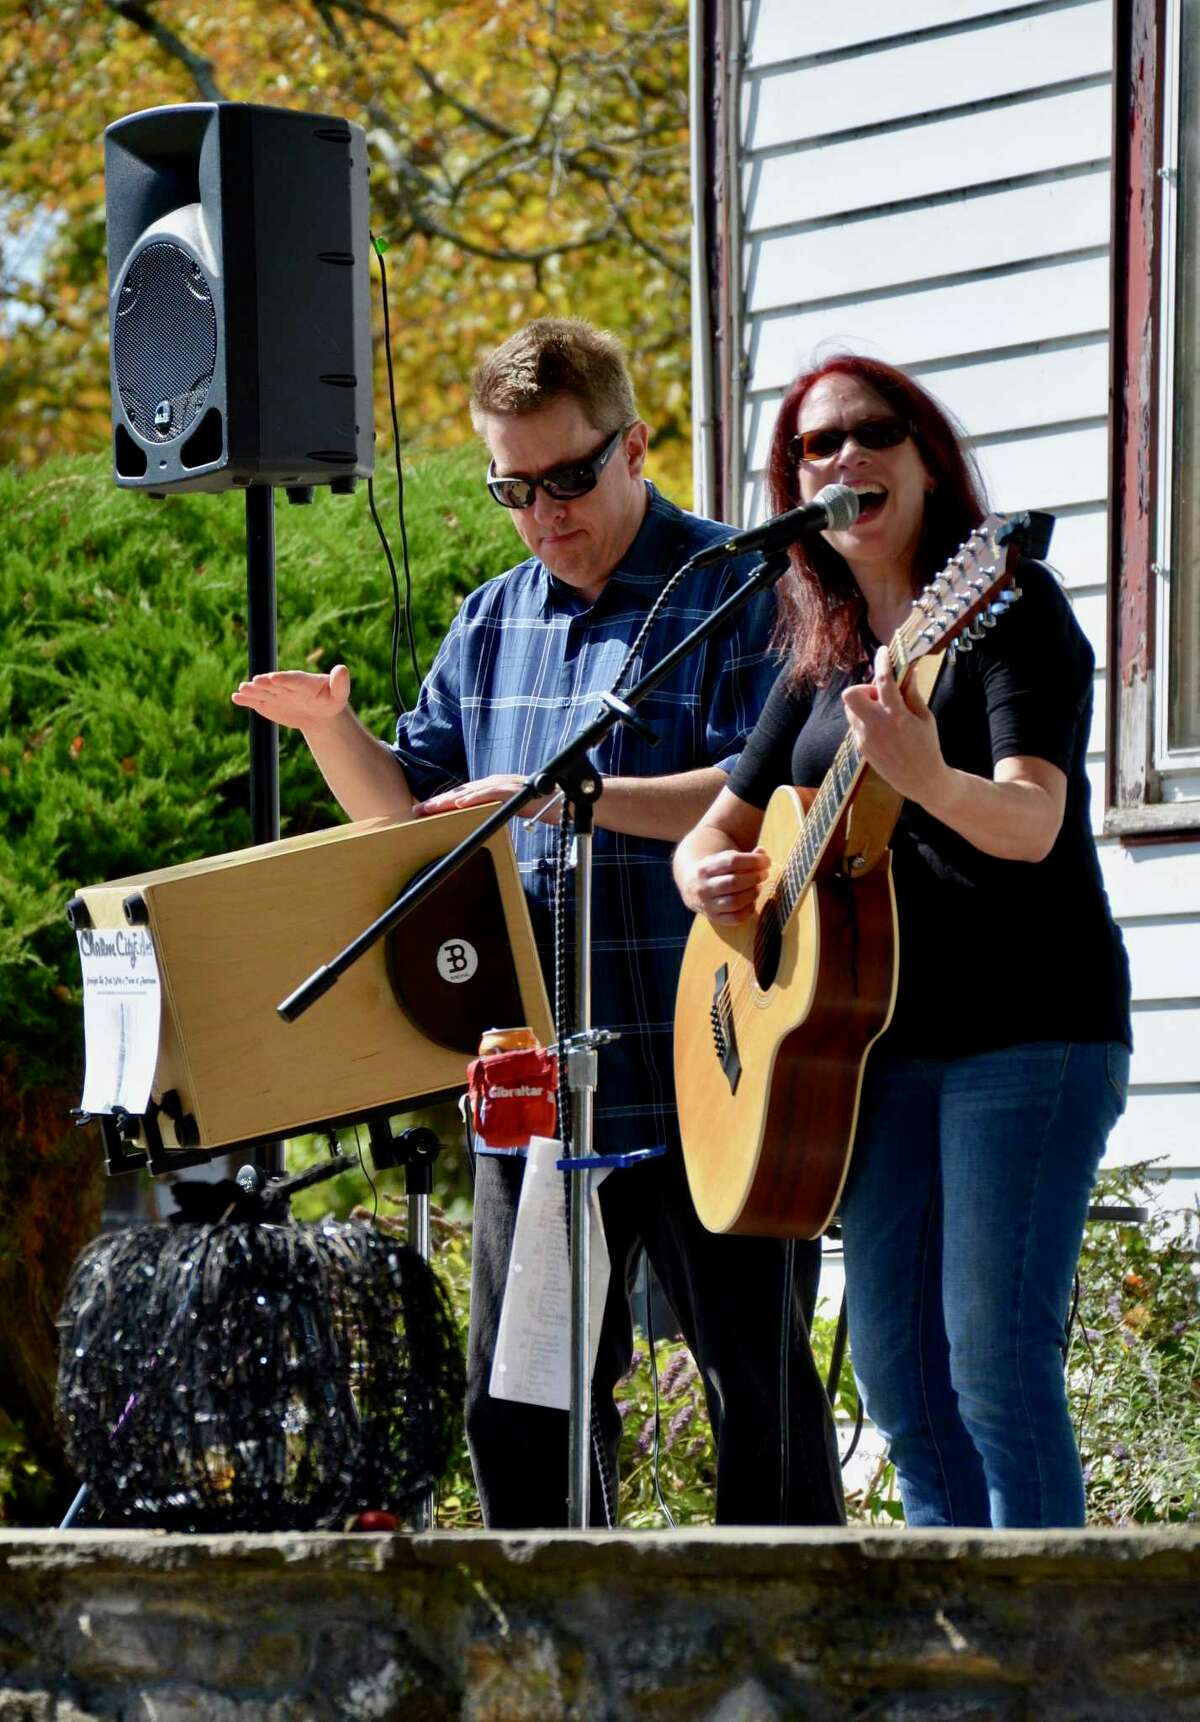 H.O.R.S.E. of CT, 43 Wilbur Road, Washington, is holding a music festival Sept. 25 at the farm. Pictured are the Red Hots, one of the bands.